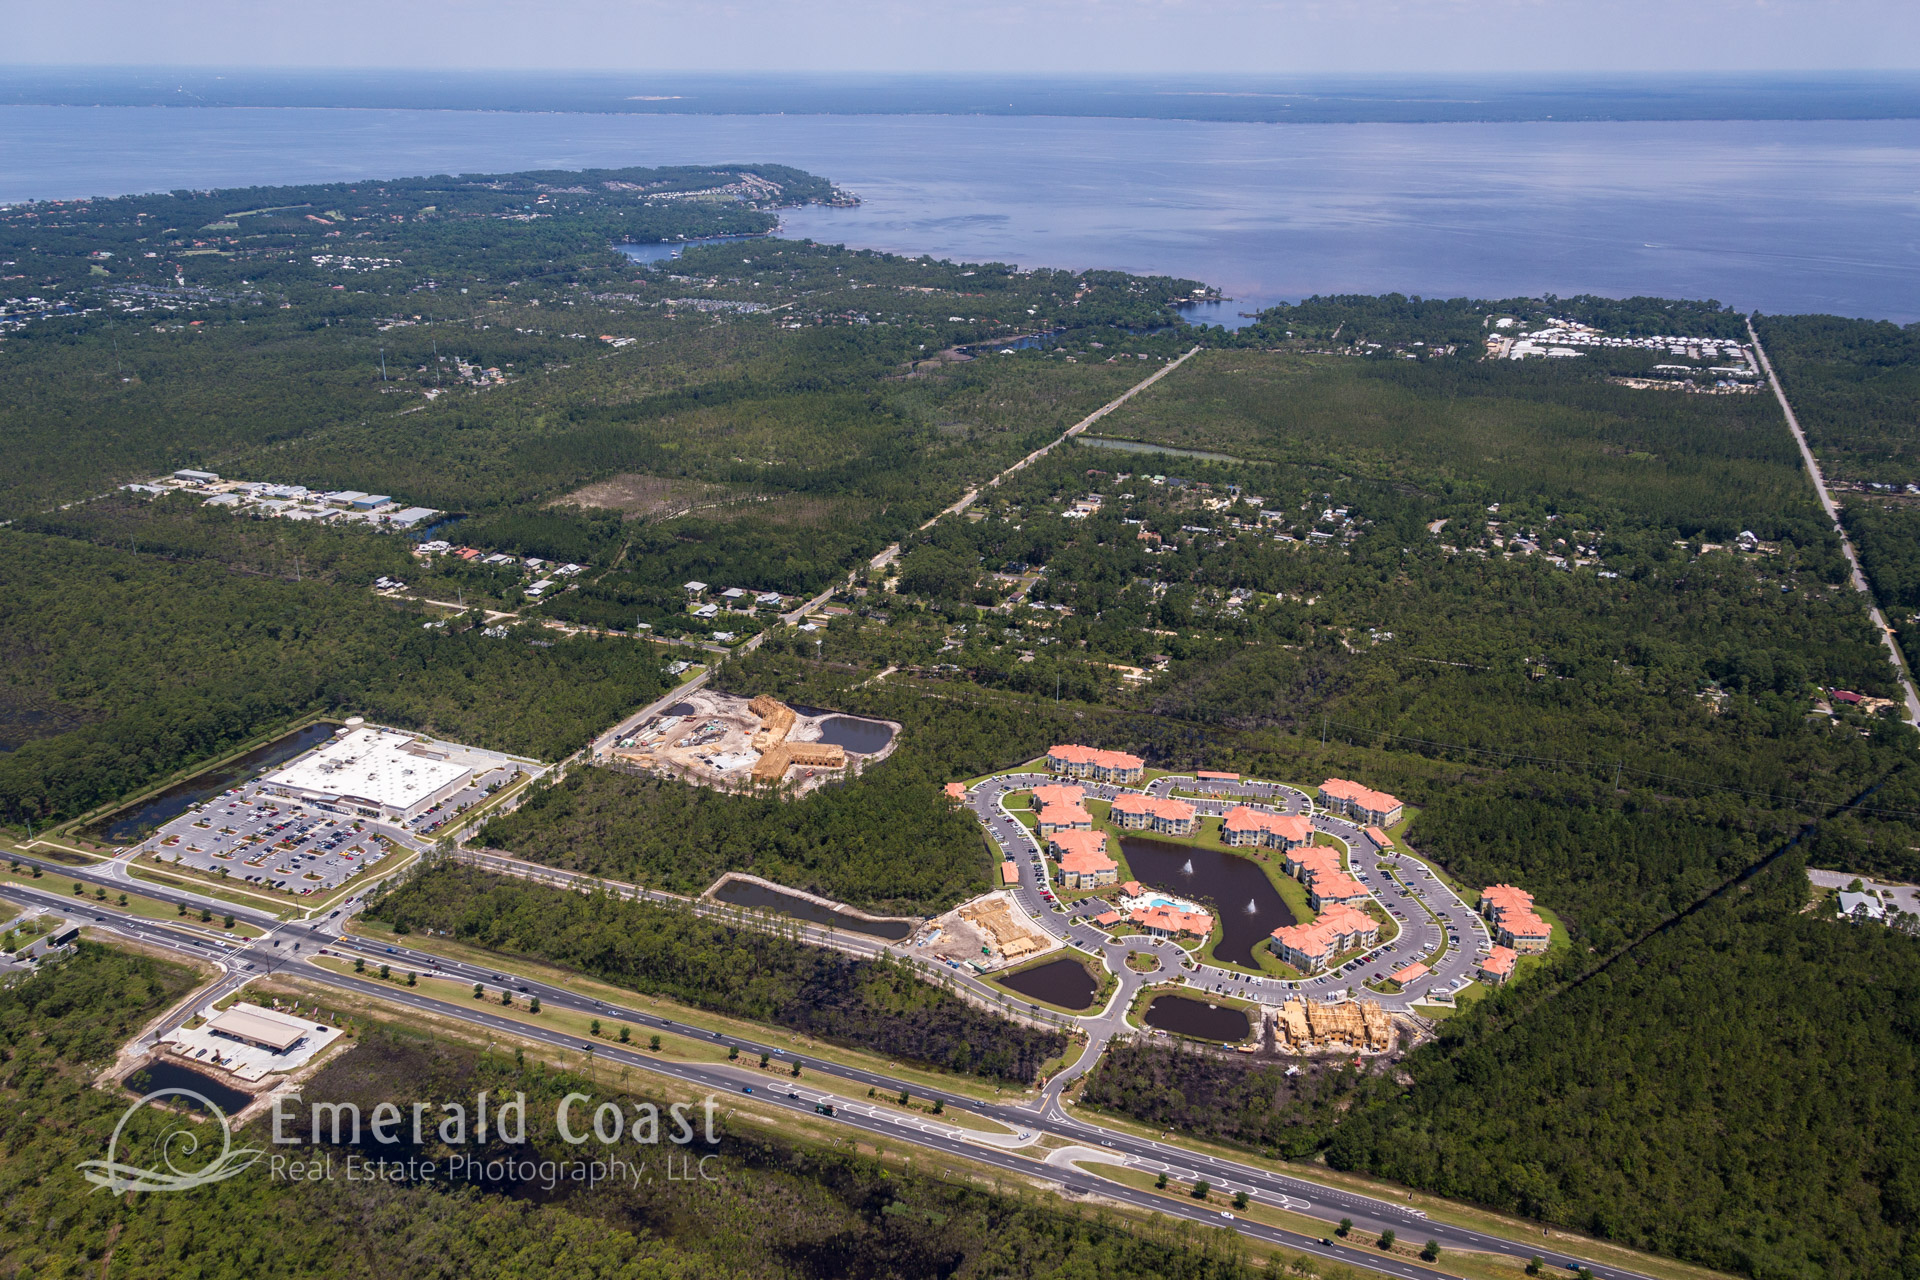 Aerial Photography of Santa Rosa Beach, Florida